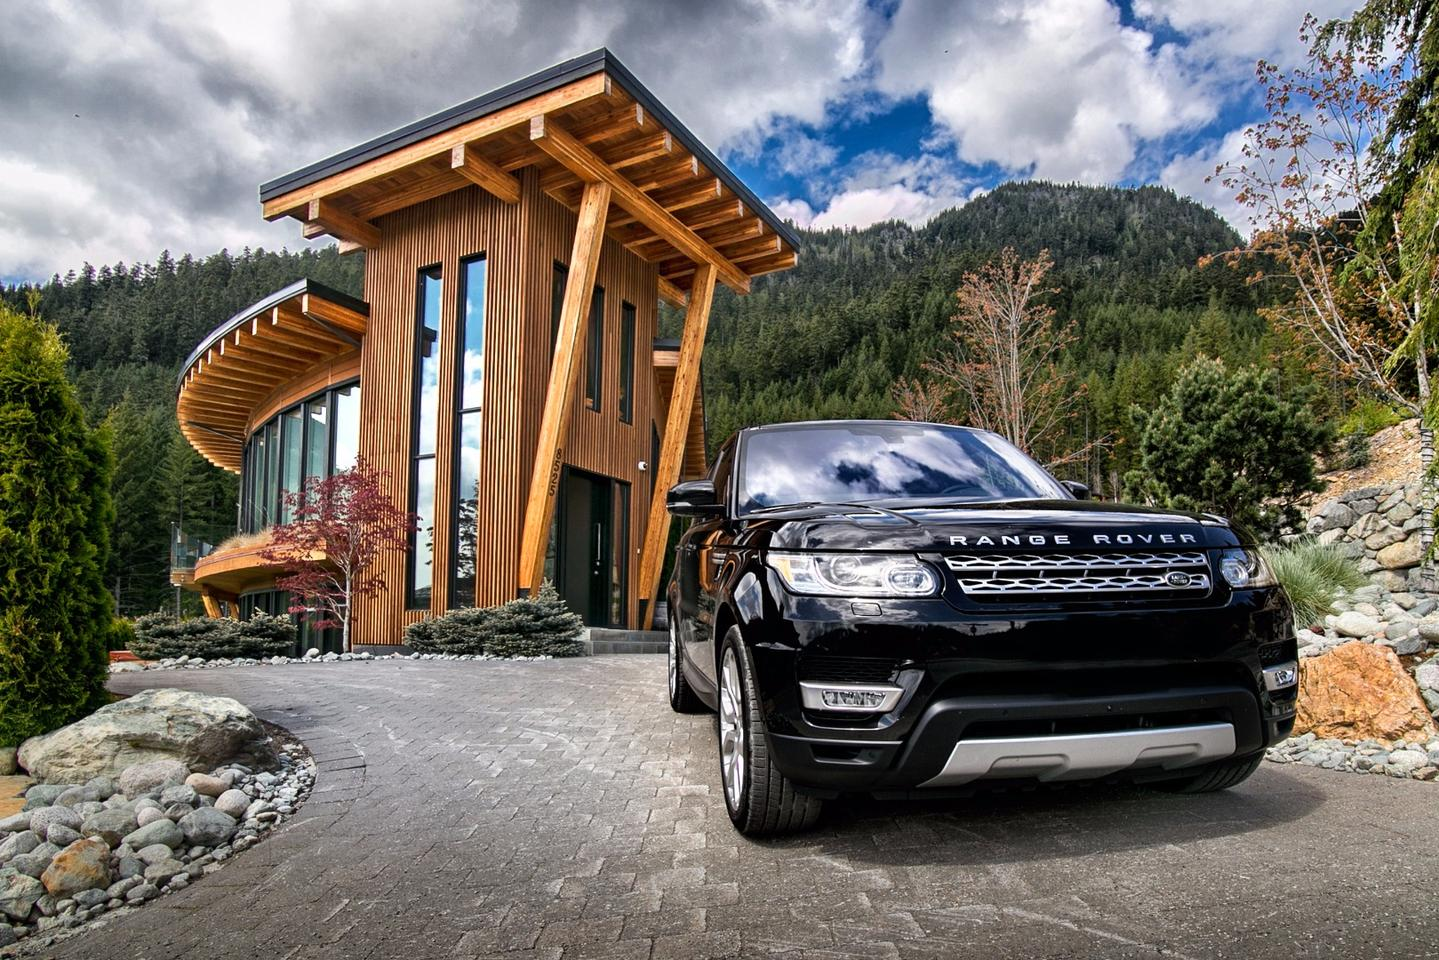 The average home in Vancouver runs around $1 million Canadian, making the classy Range Rover Sport feel right at home